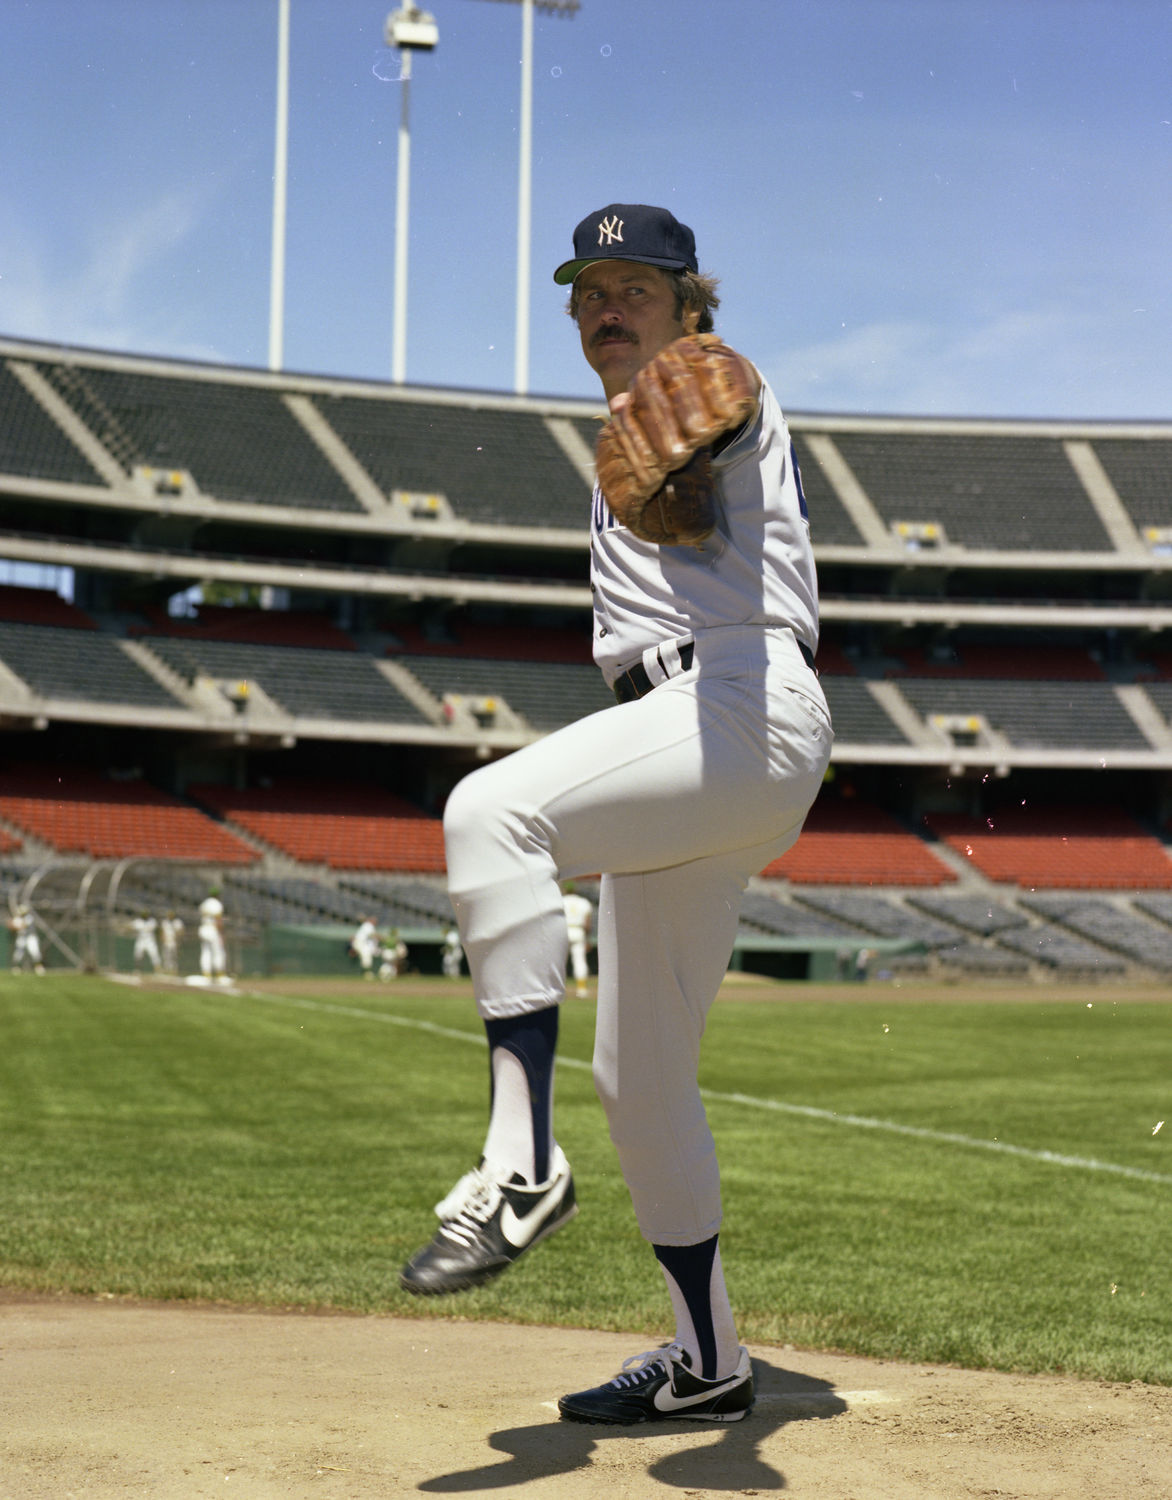 catfish hunter signs free agent contract with new york yankees